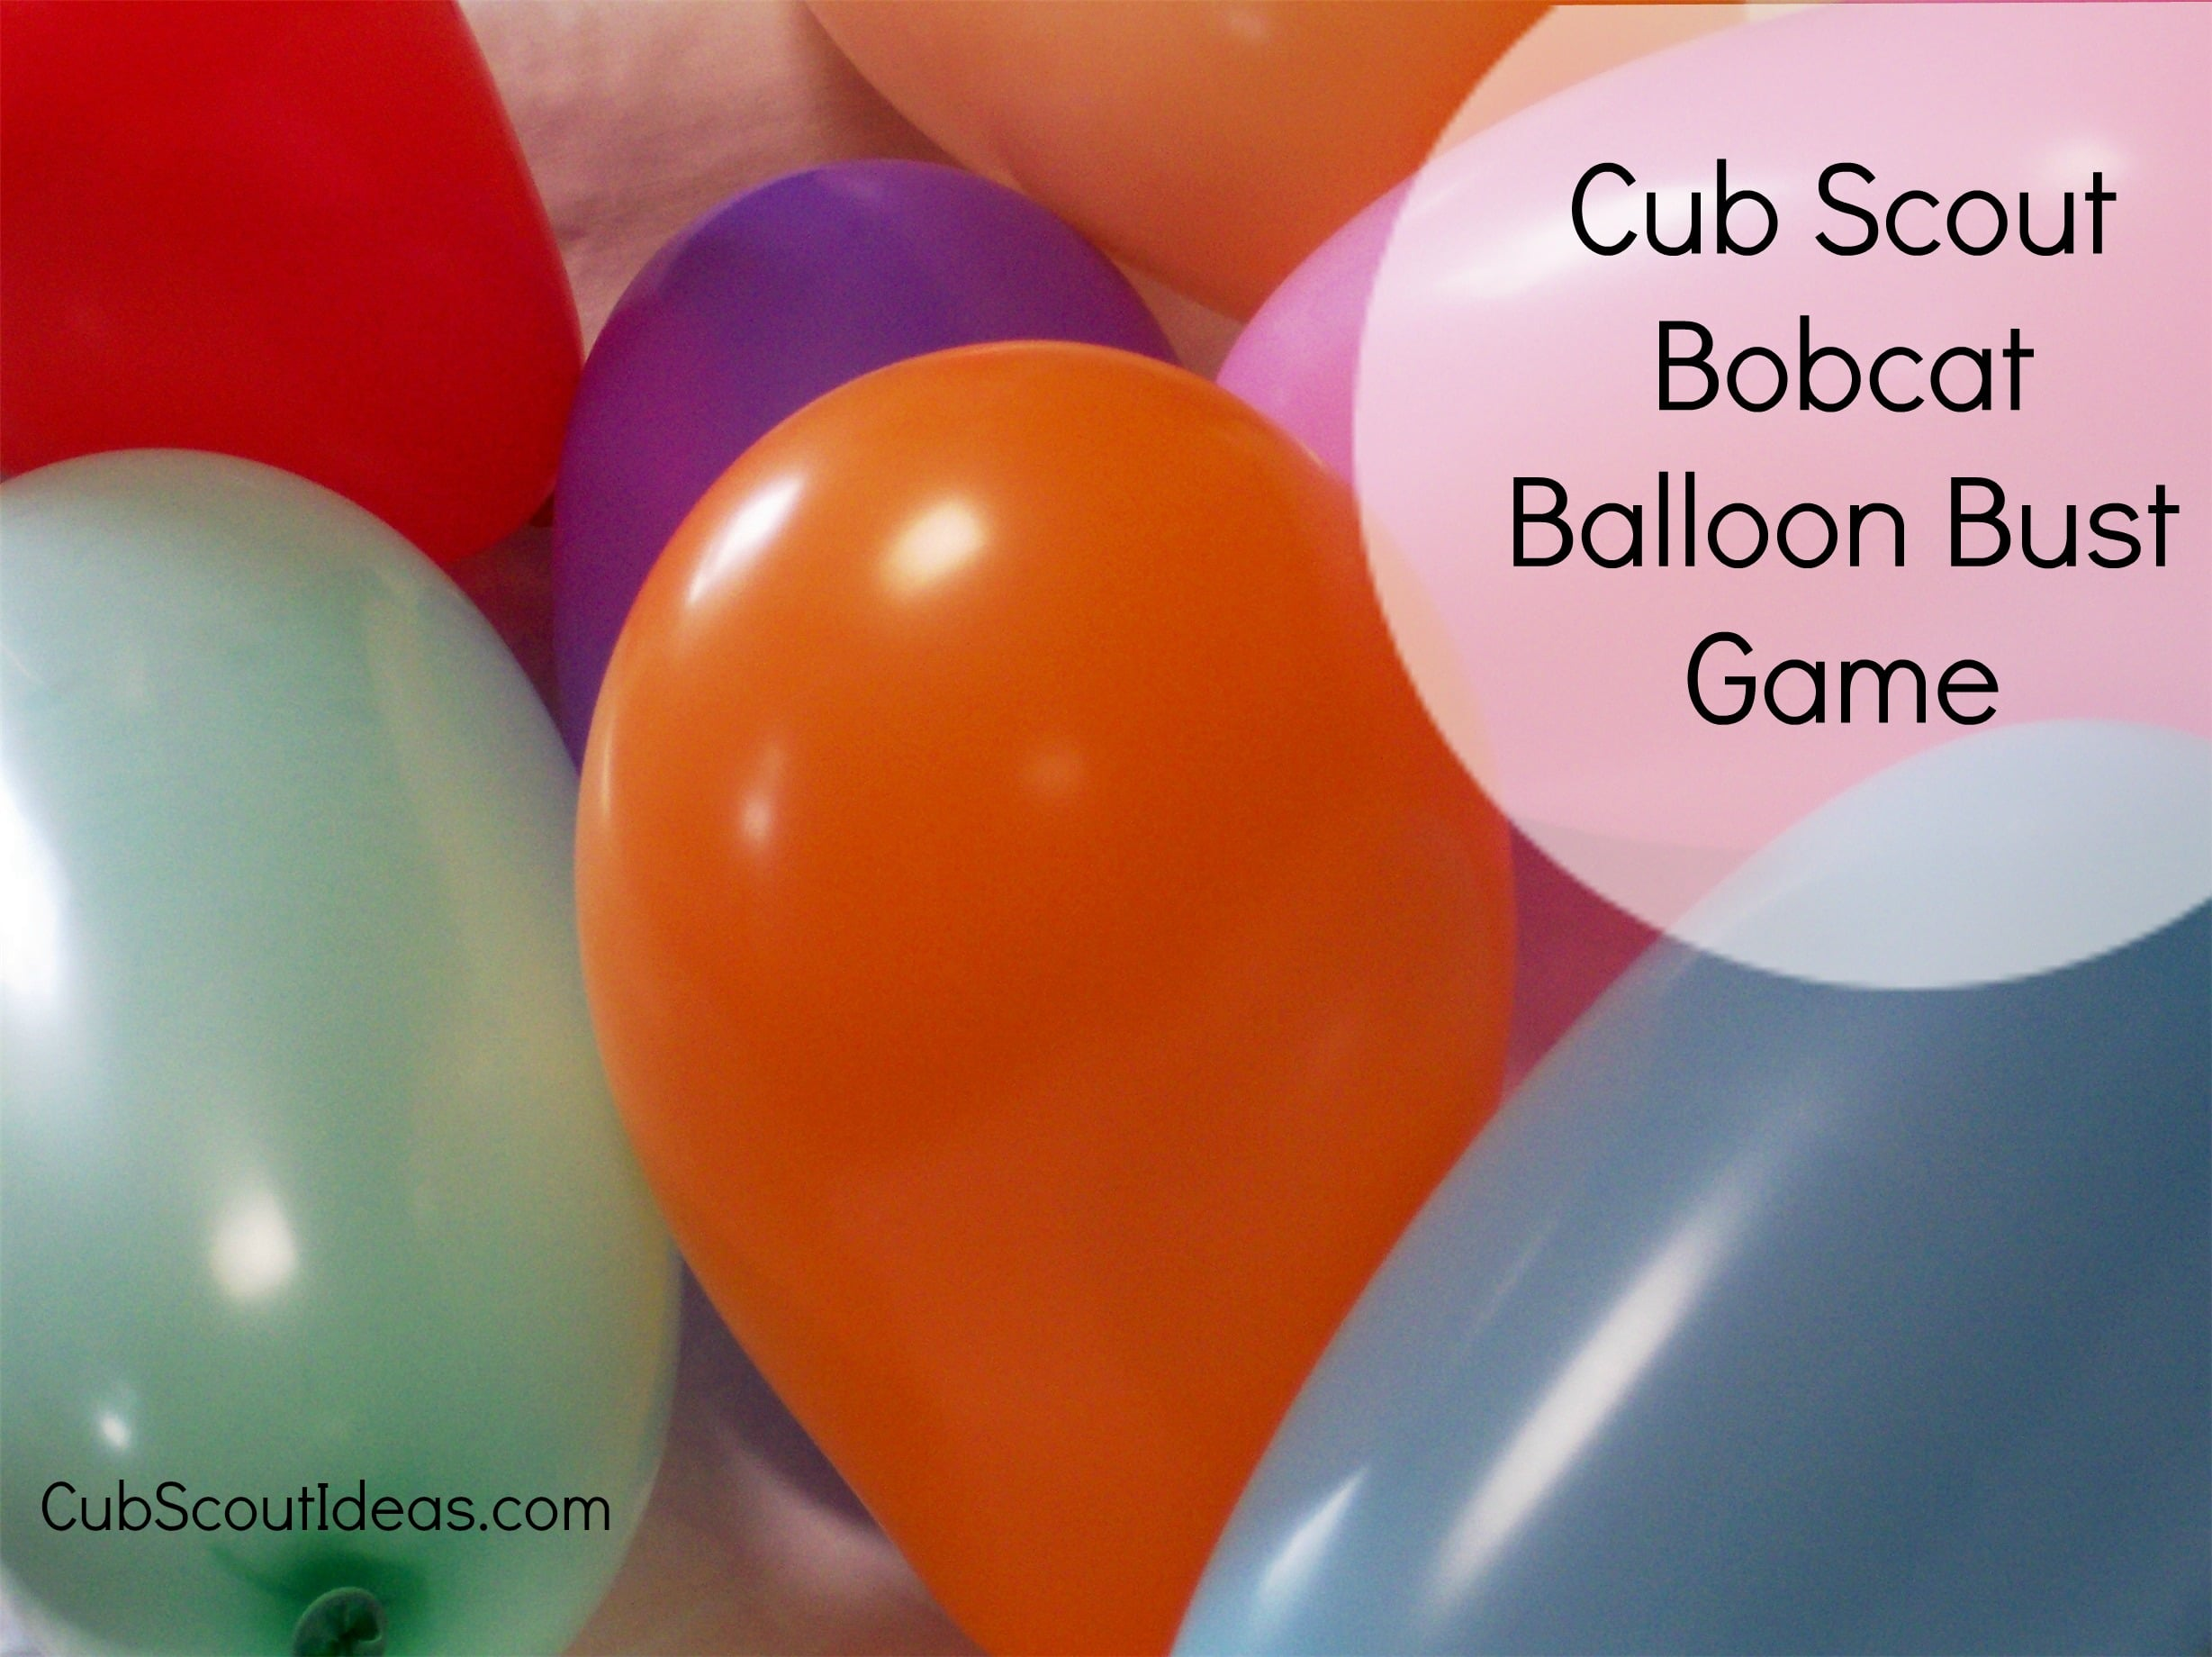 Cub Scout Bobcat Requirements Balloon Bust Game Cub